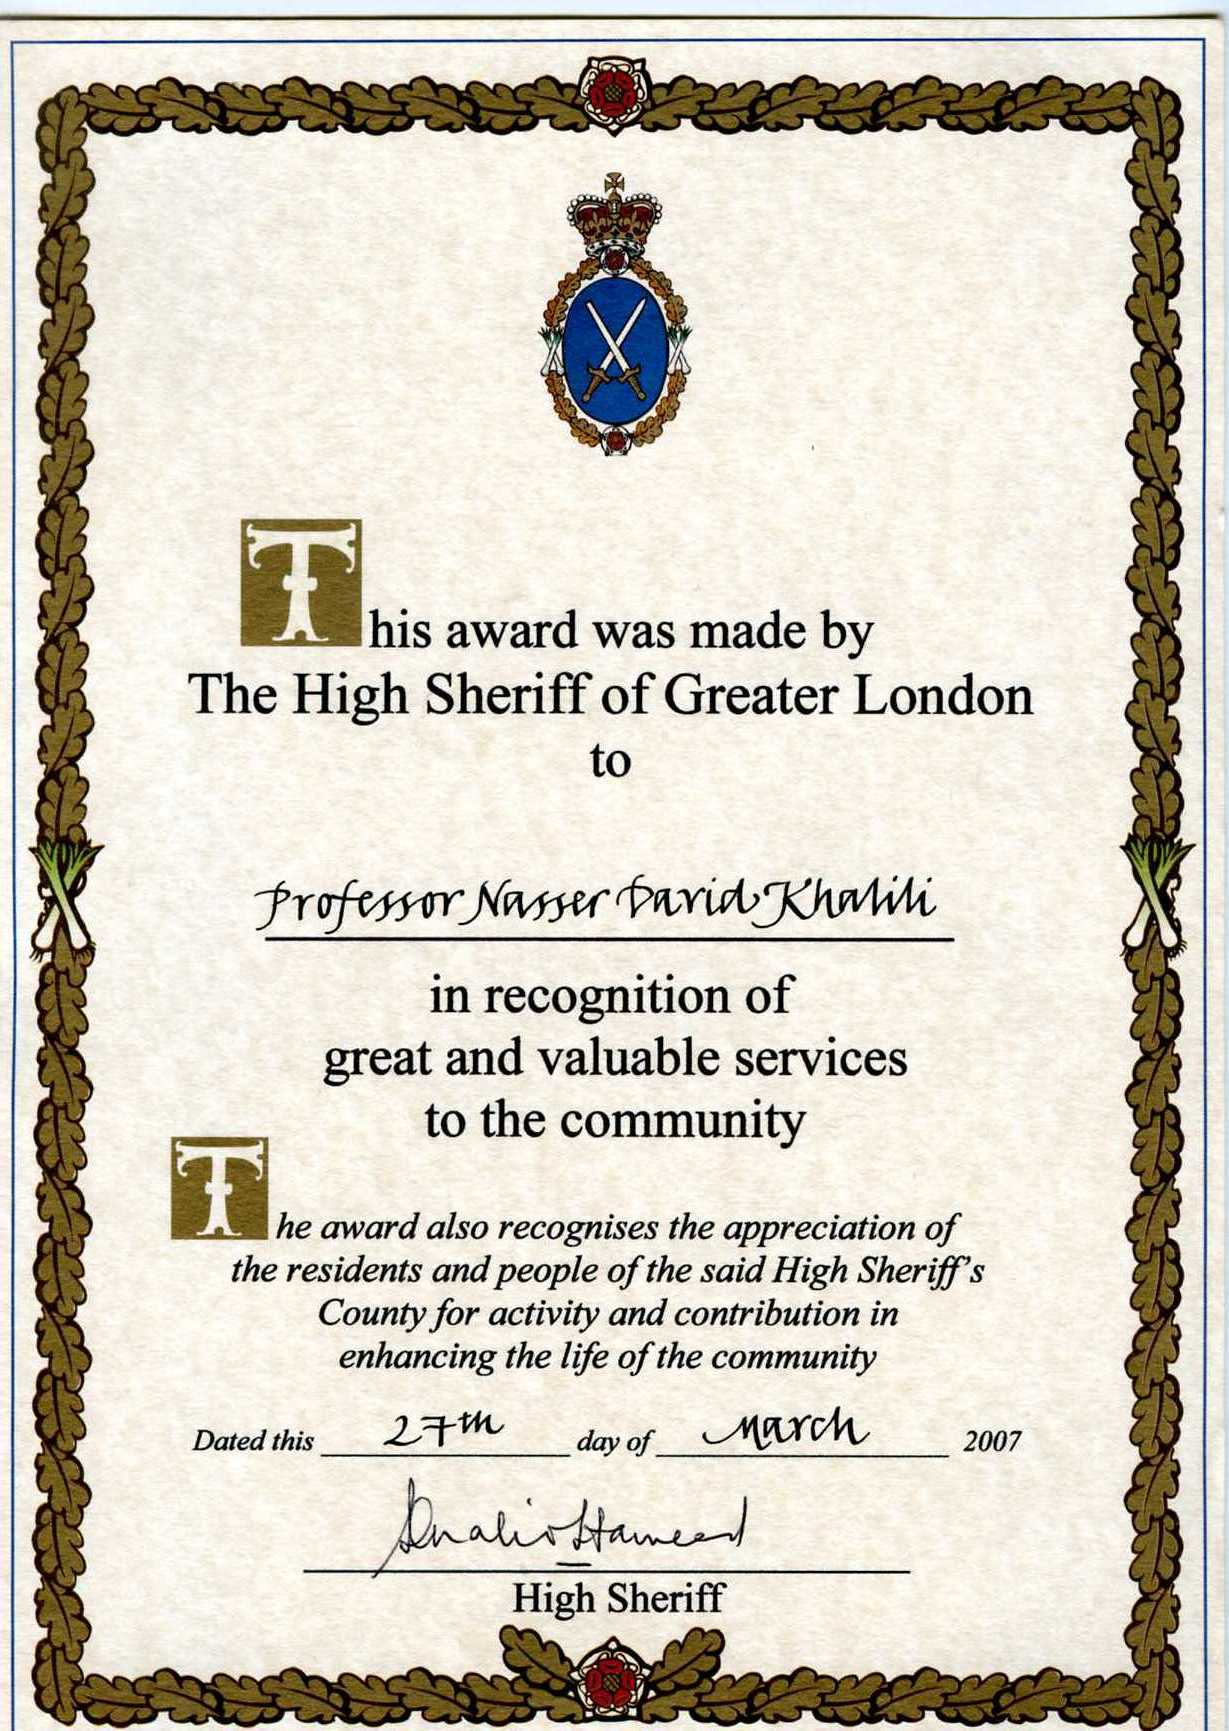 High Sheriff of Greater London Award